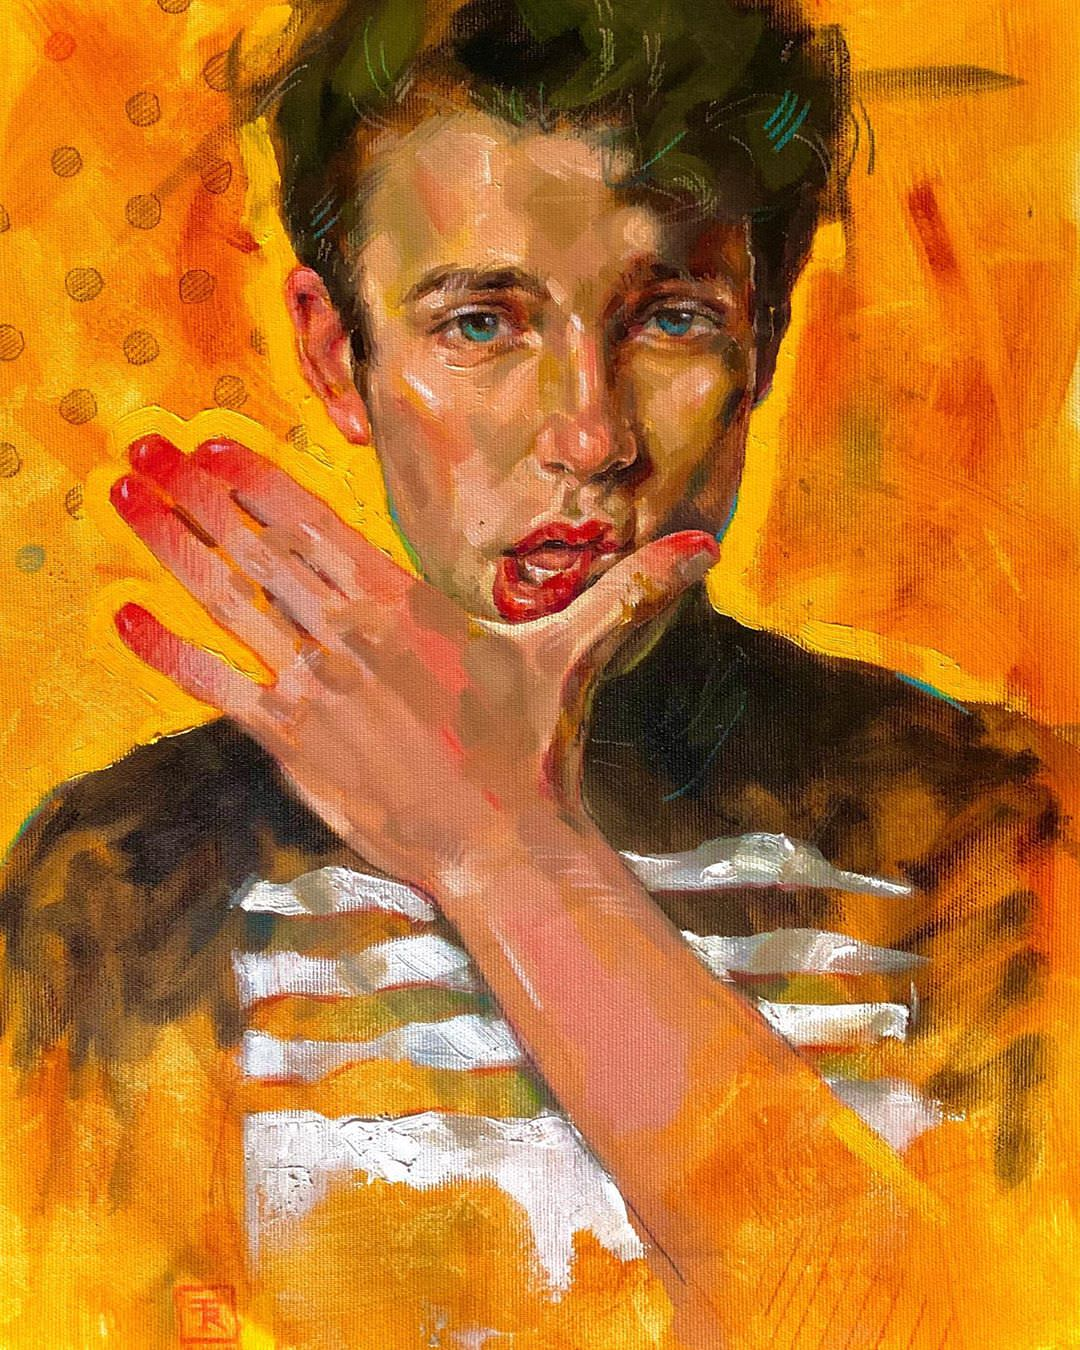 resistance-portrait-tania-rivilis-painting-orange